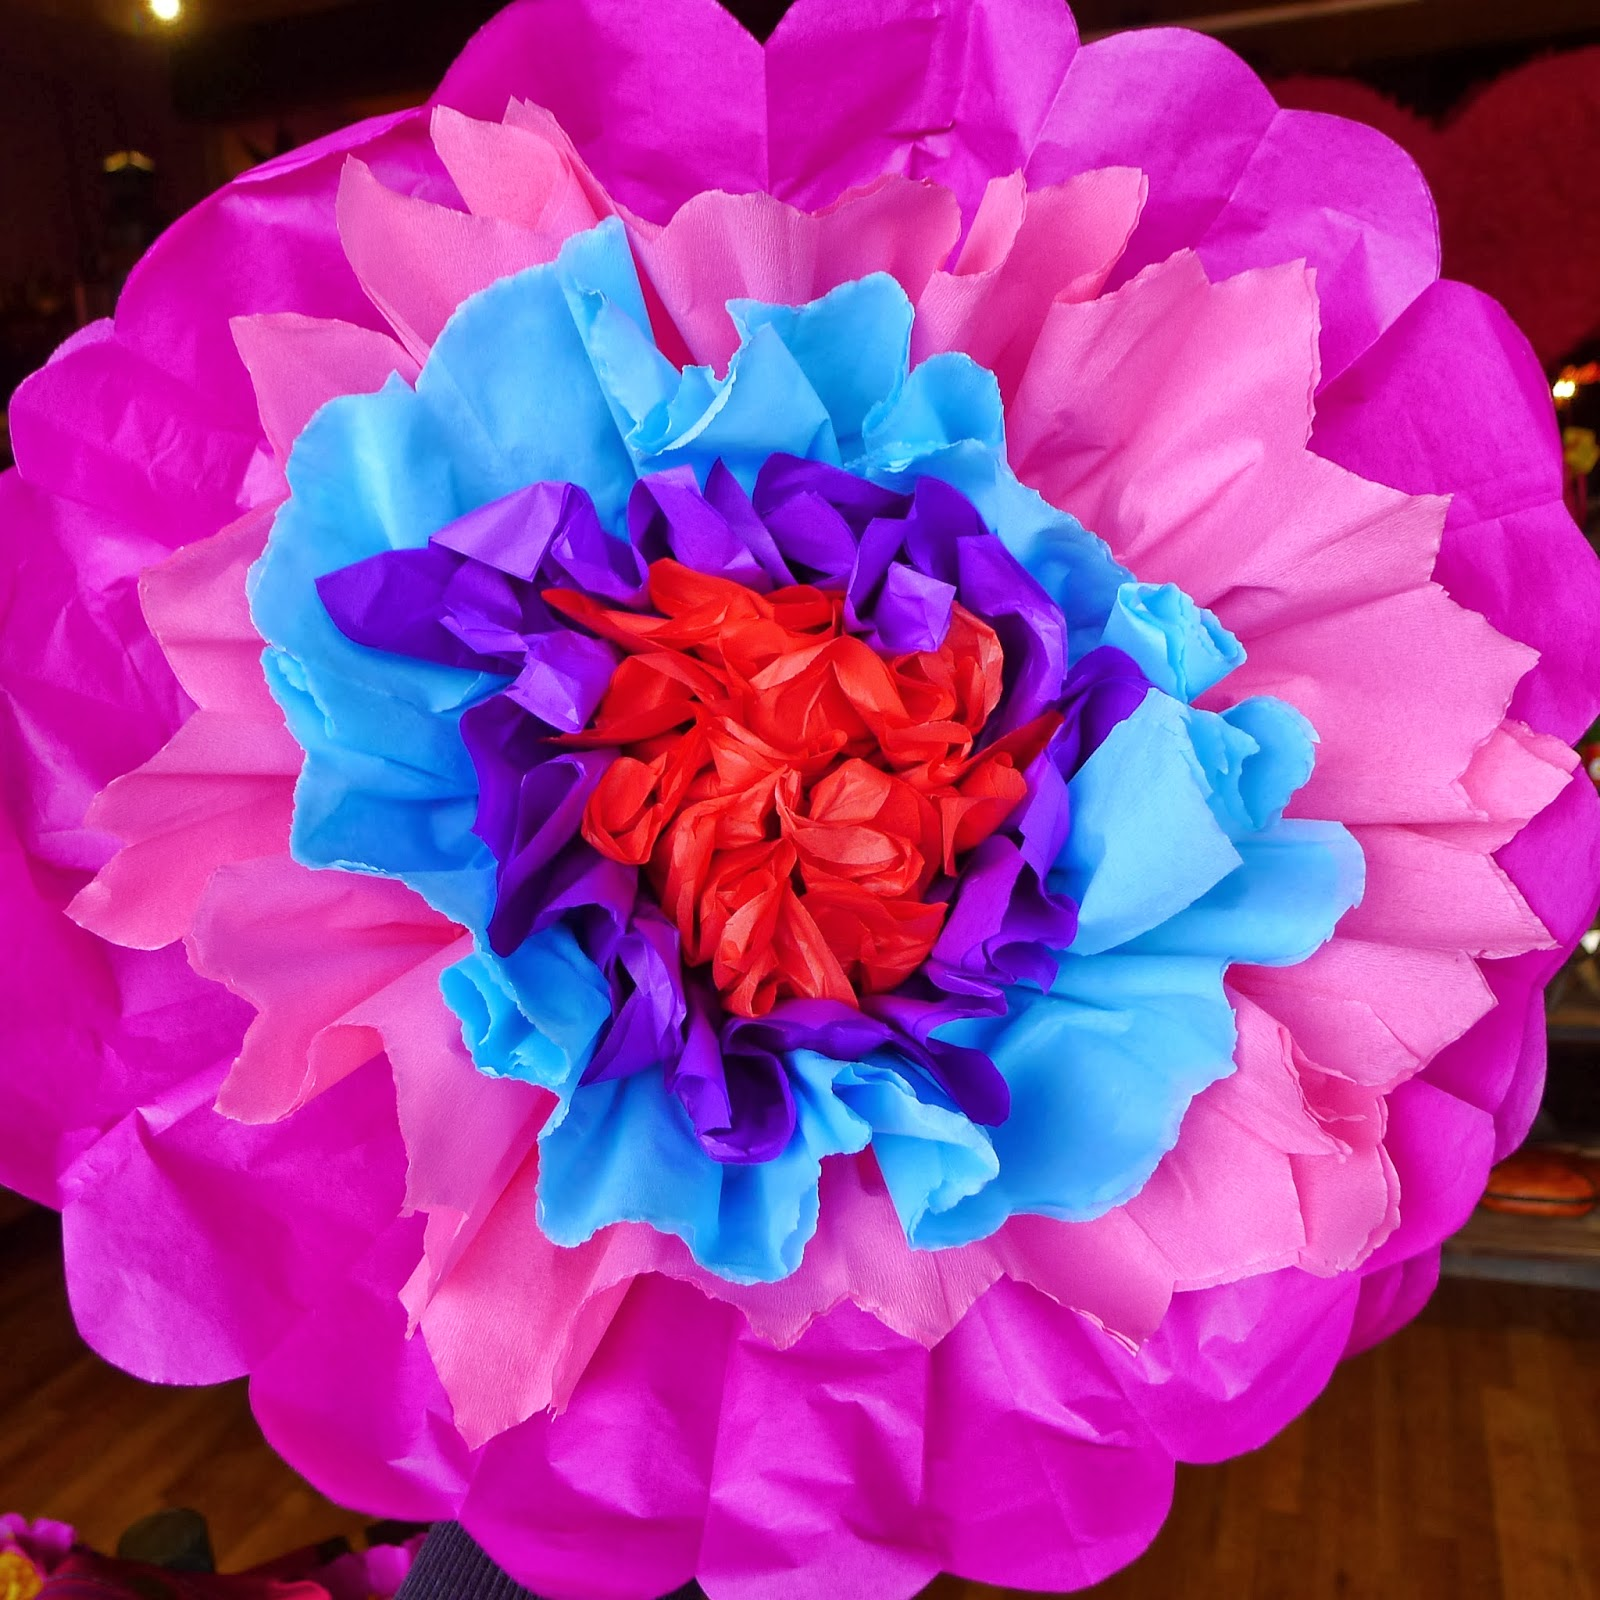 How to Make a Giant Magical Paper Flower Poppy Garden